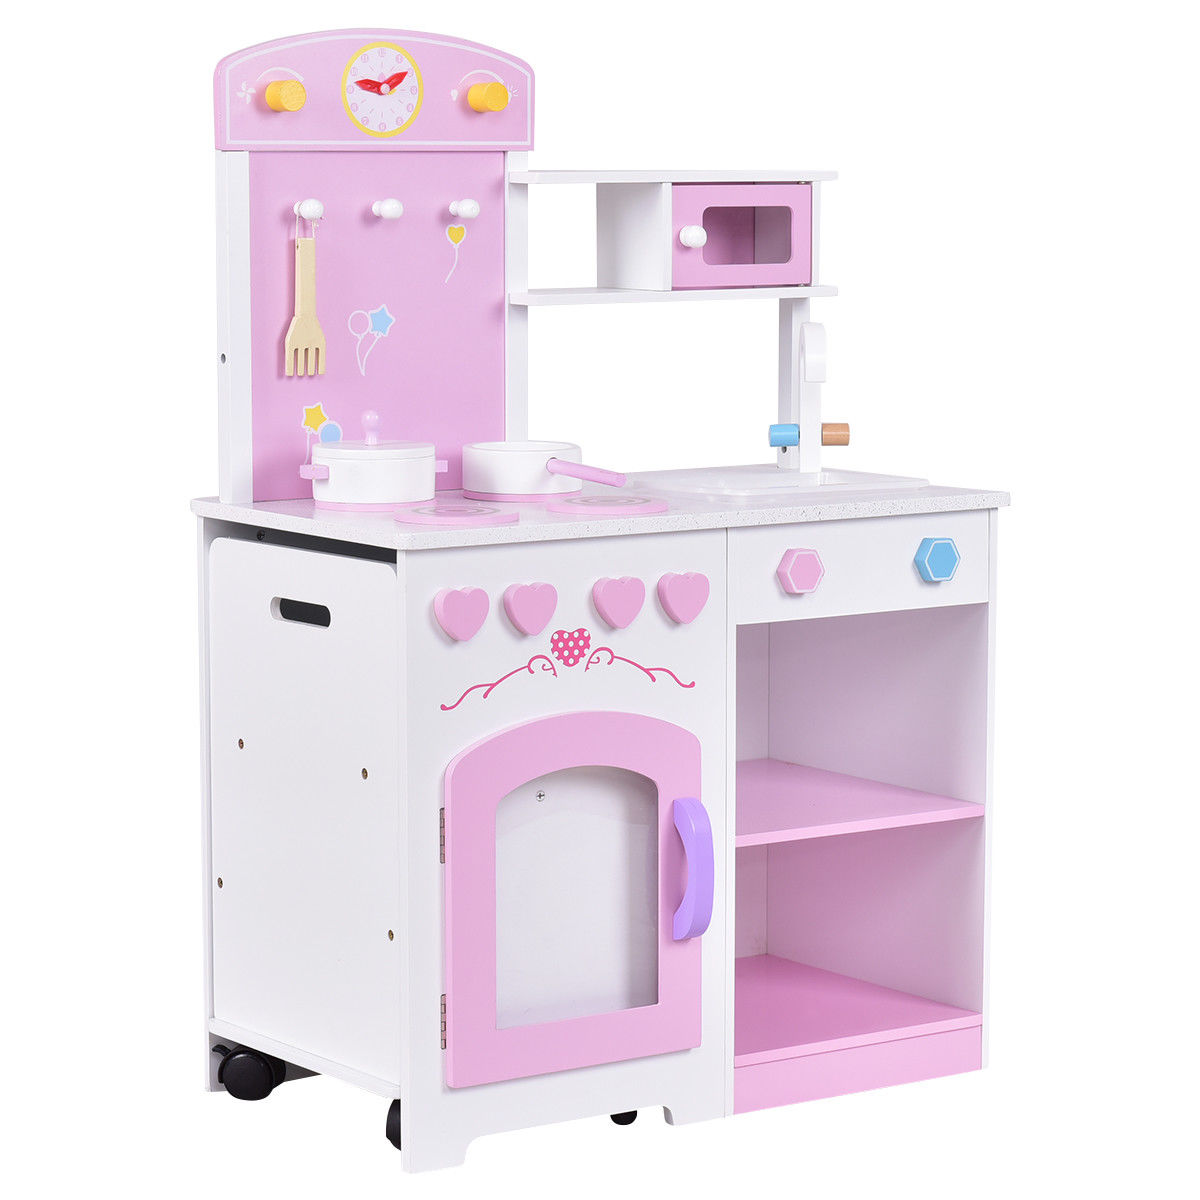 Gymax 2 in 1 kids kitchen play set wood pretend toy cooking set toddler with chair